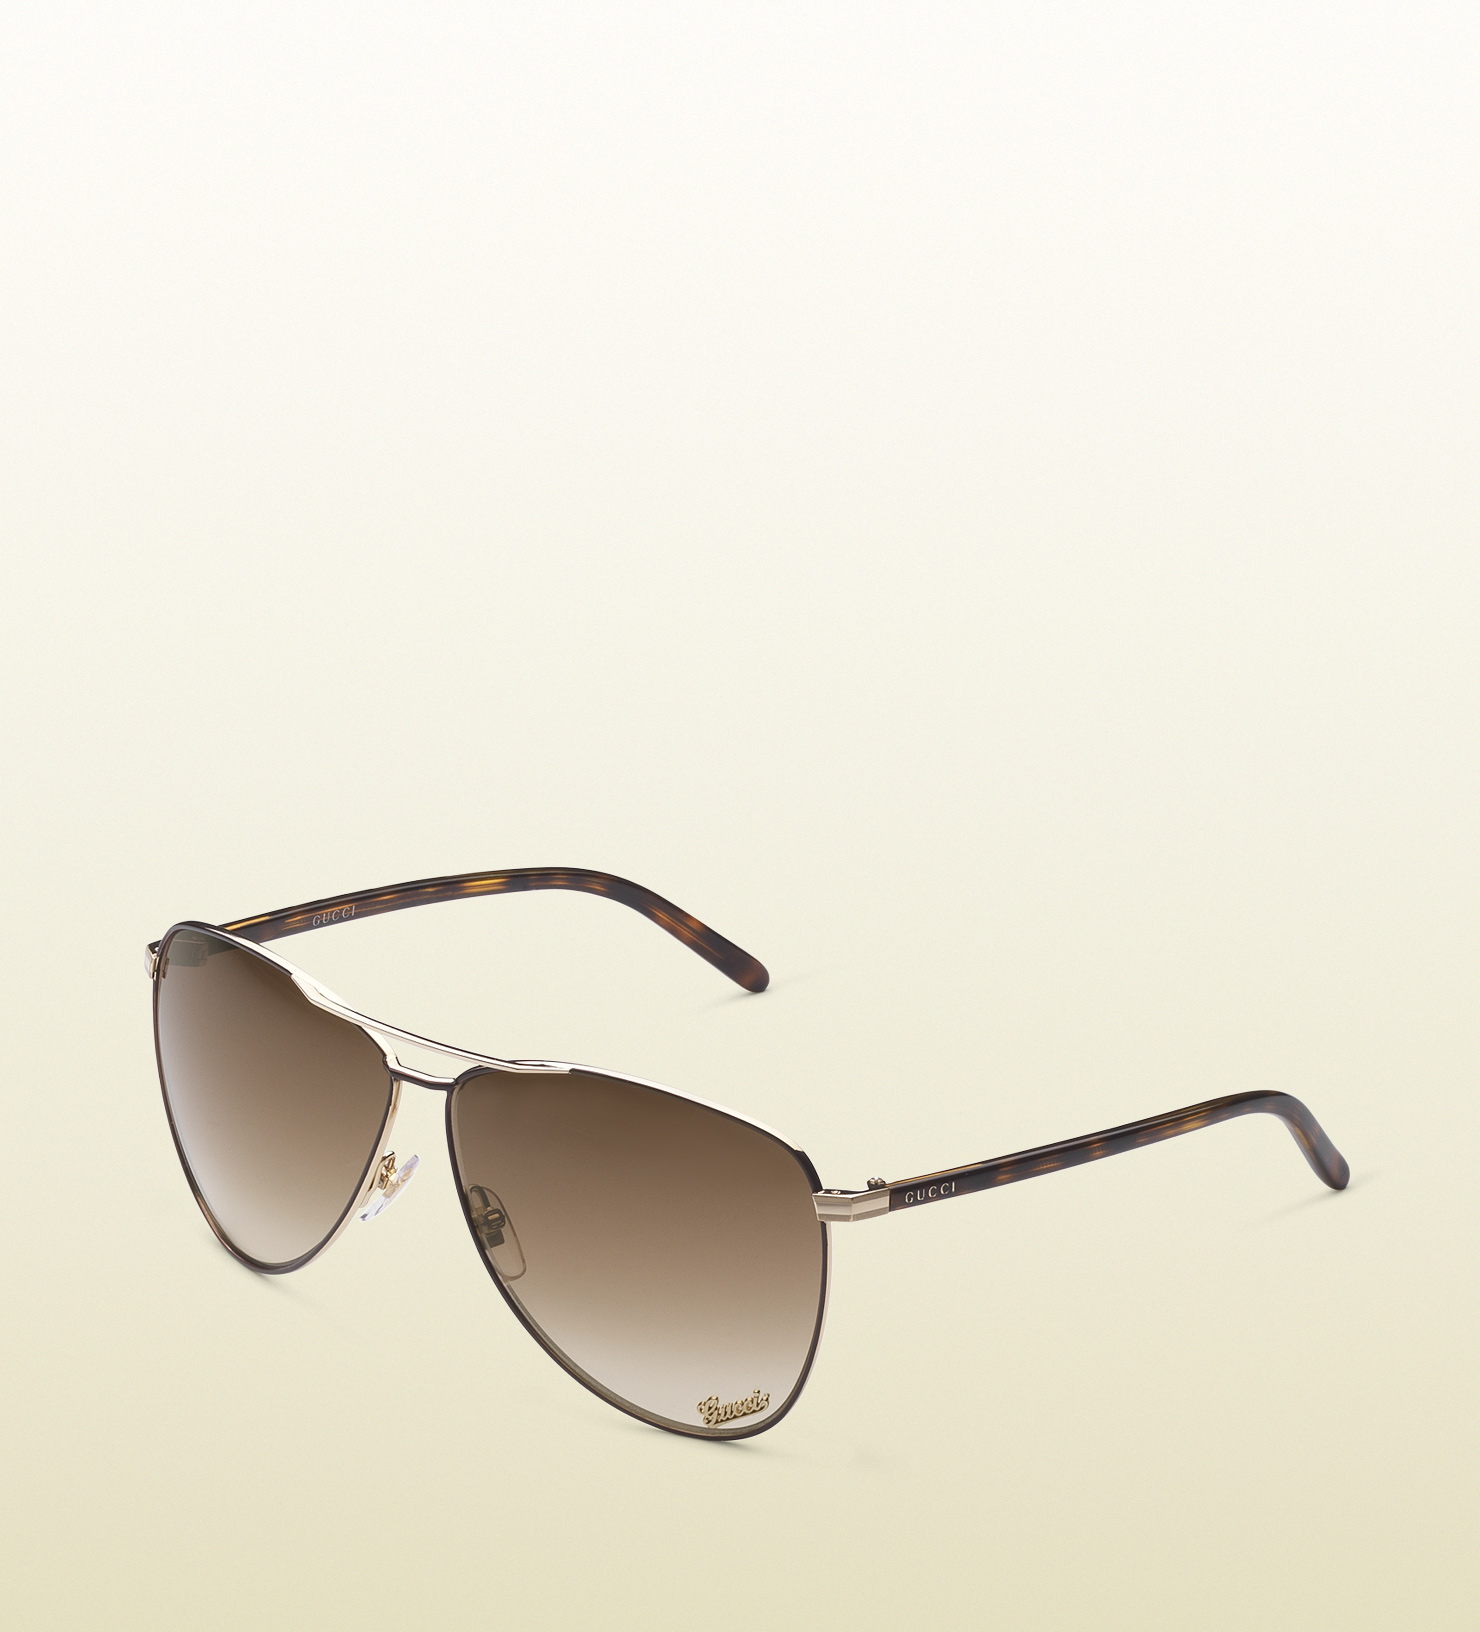 c47936f33bb Lyst - Gucci Aviator Sunglasses with Gucci Signature Pad On Lens and ...